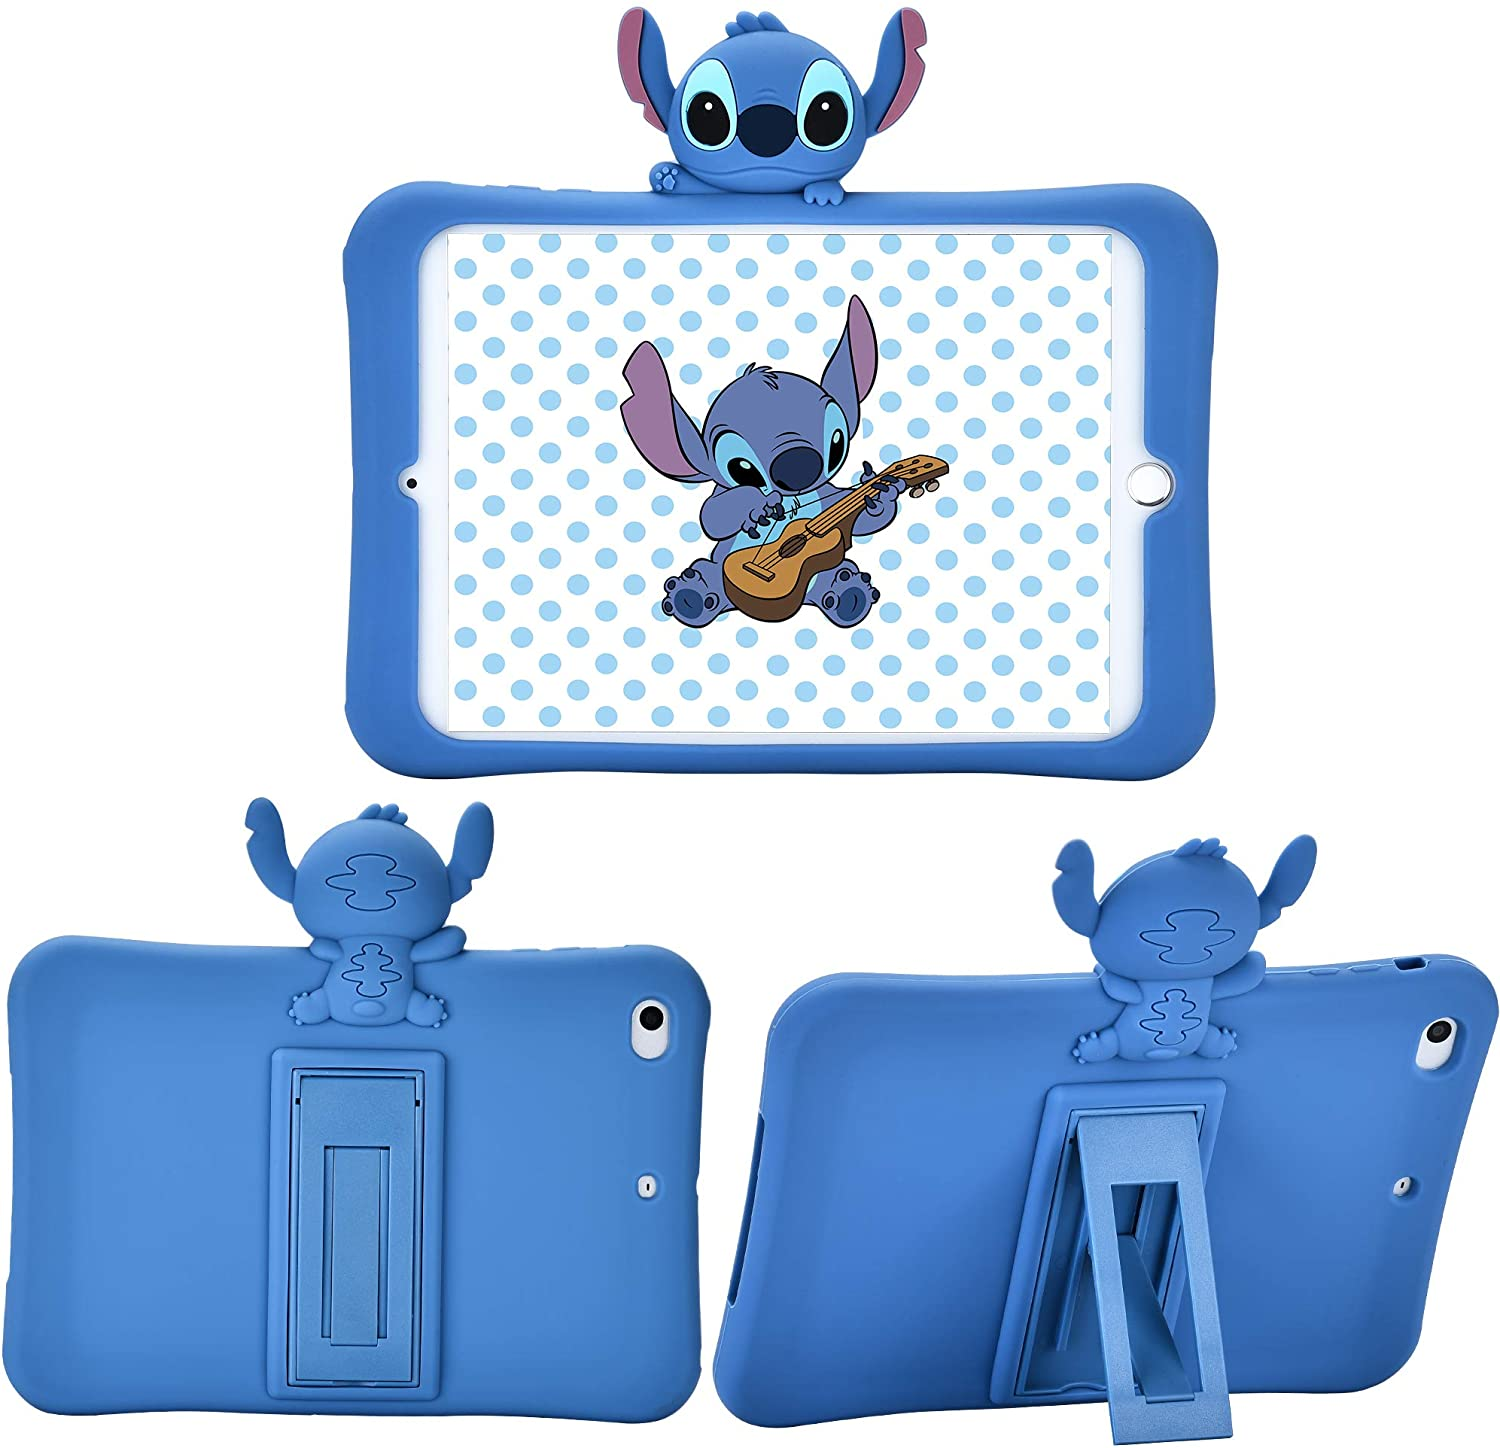 Logee Stitch Kickstand Case for iPad Mini 1/2/3,3D Cartoon Animal Cute Soft Silicone Rubber Character Design Blue Holder Stand Cases,Kawaii Fashion Fun Cool Protective Cover for Kids Child Teens Girls